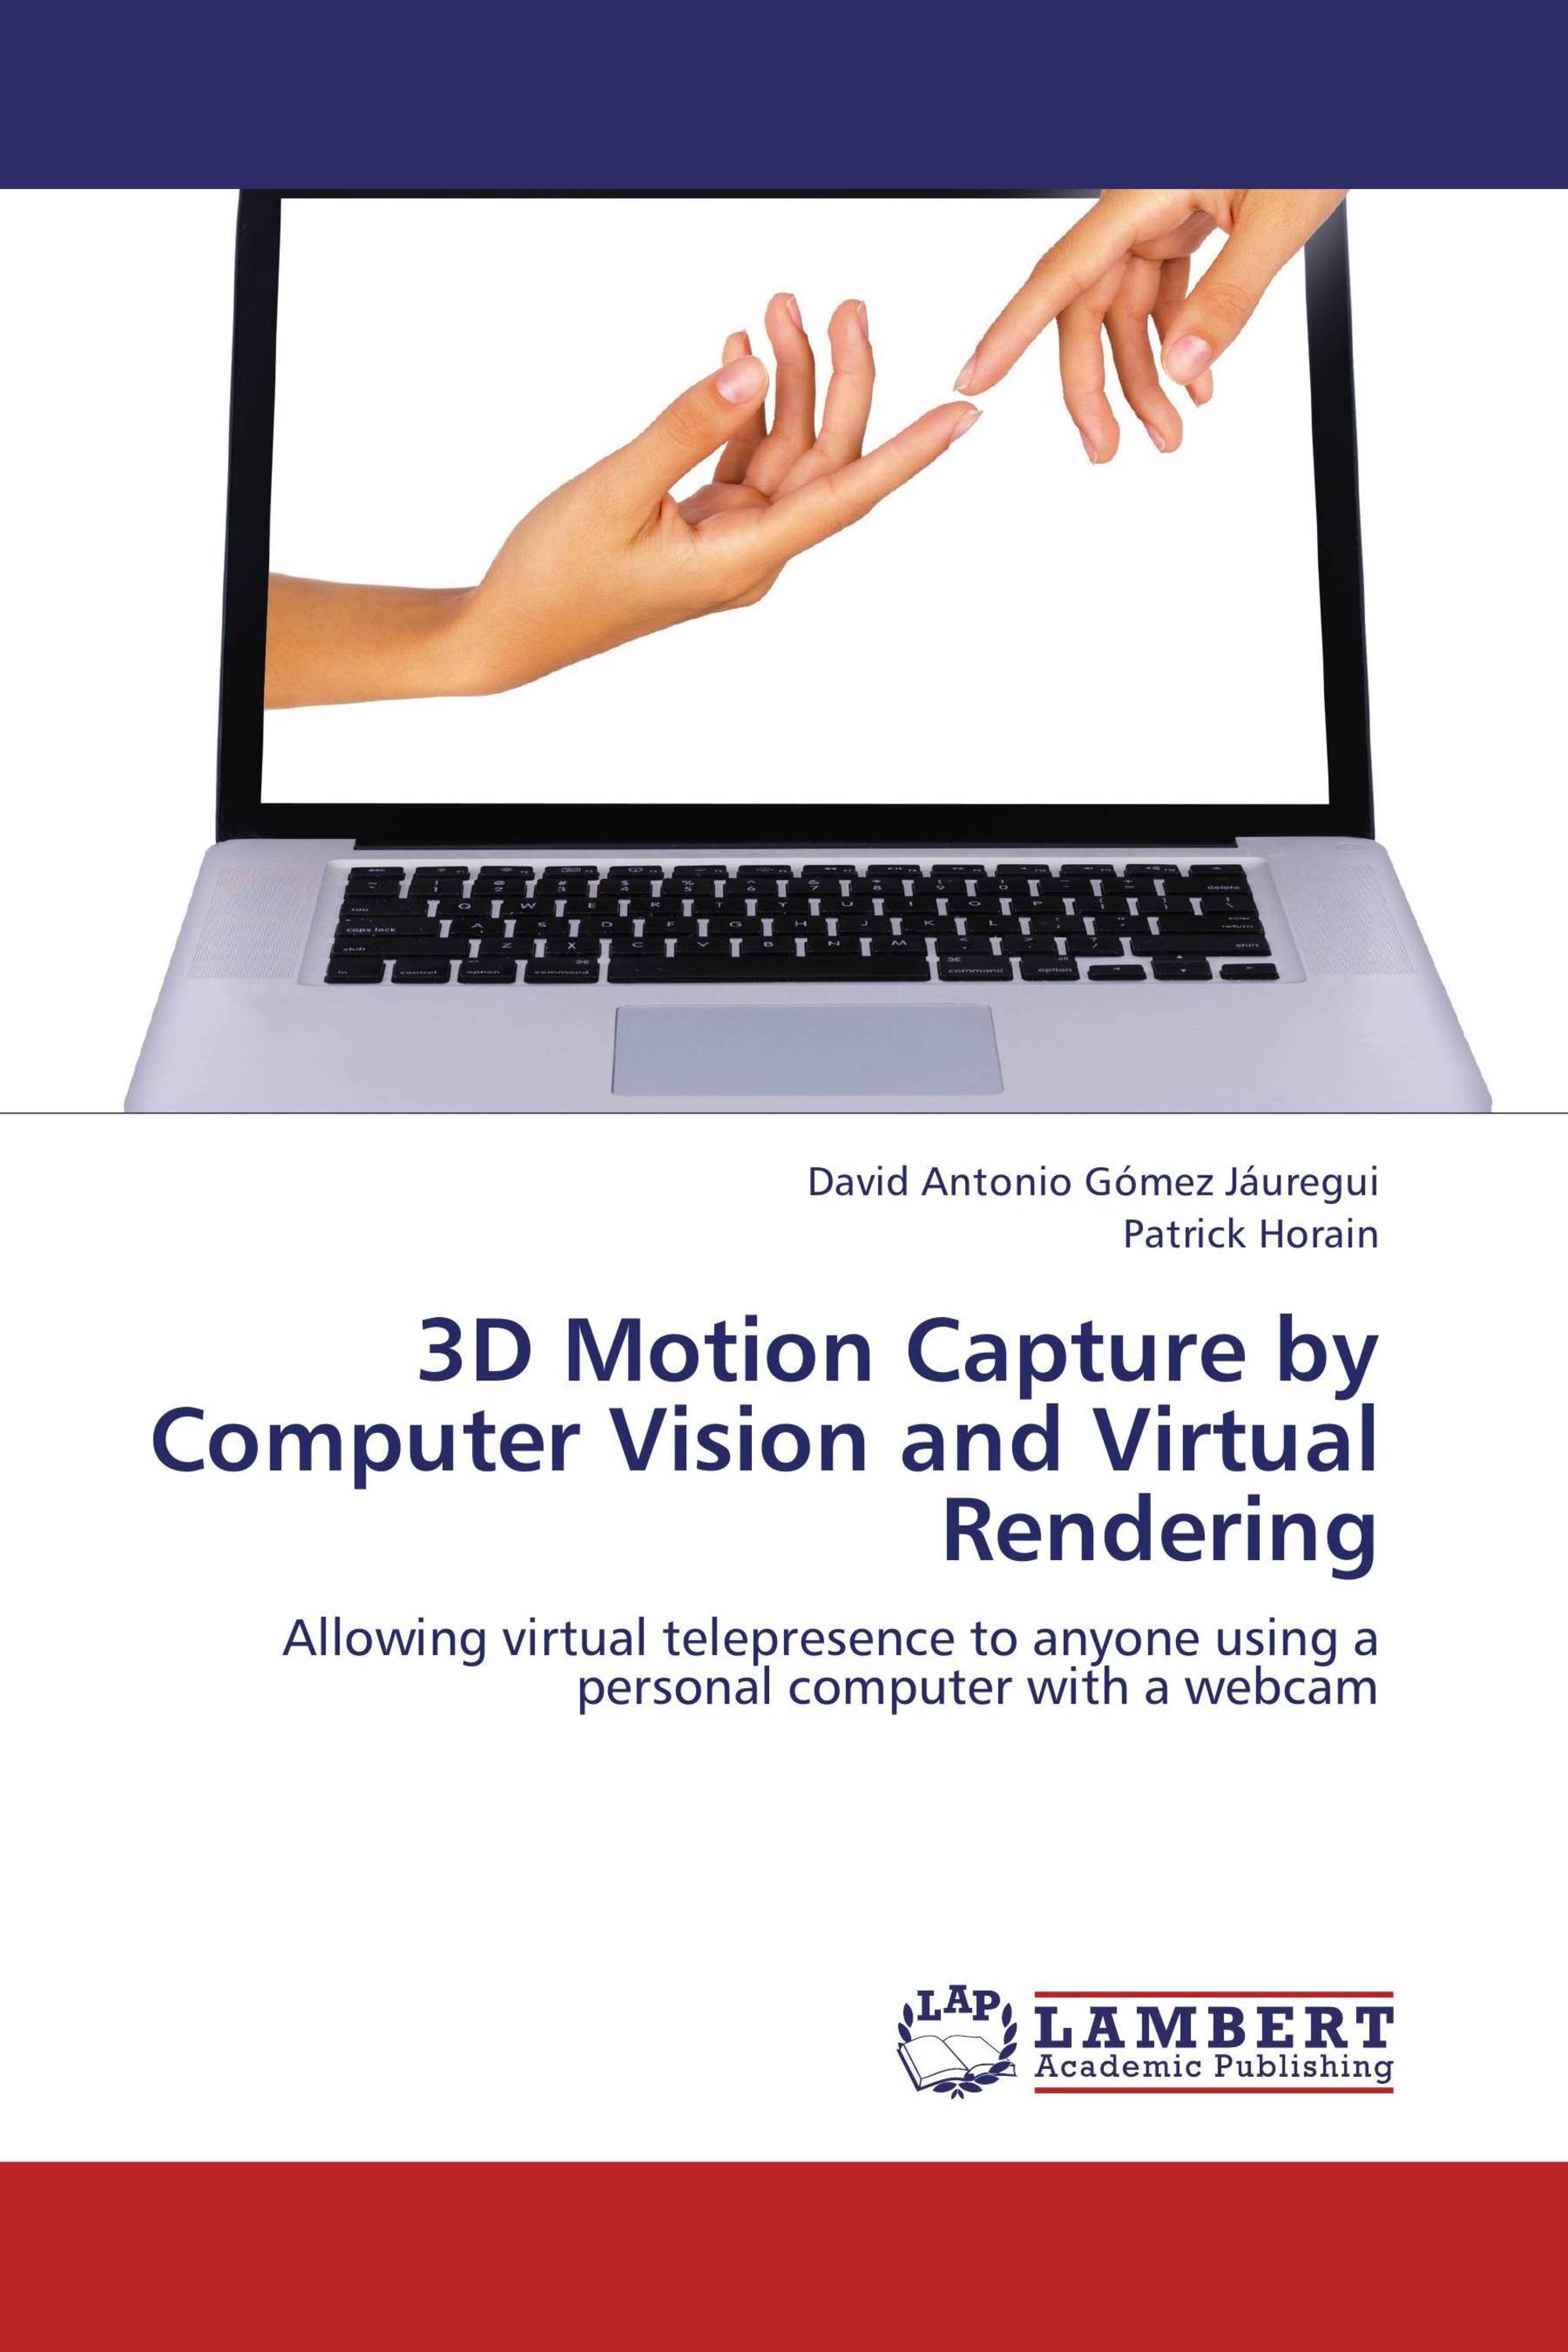 3D Motion Capture by Computer Vision and Virtual Rendering